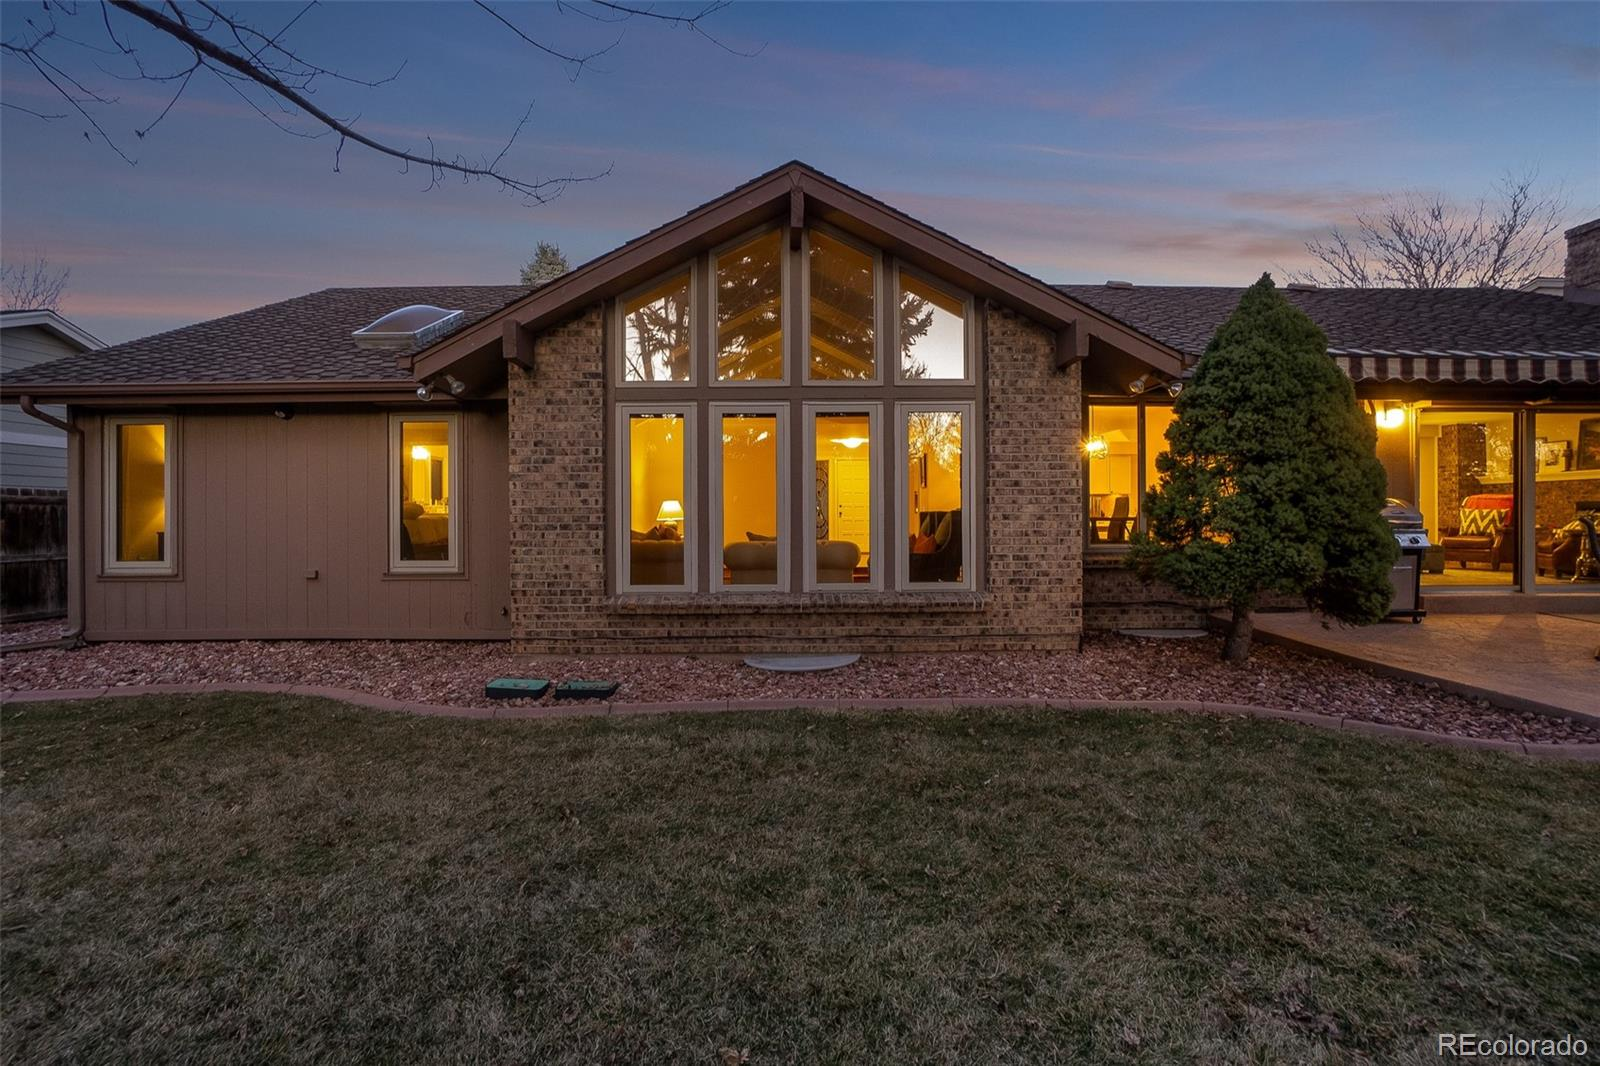 MLS# 9898024 - 36 - 5967 S Glencoe Way, Centennial, CO 80121